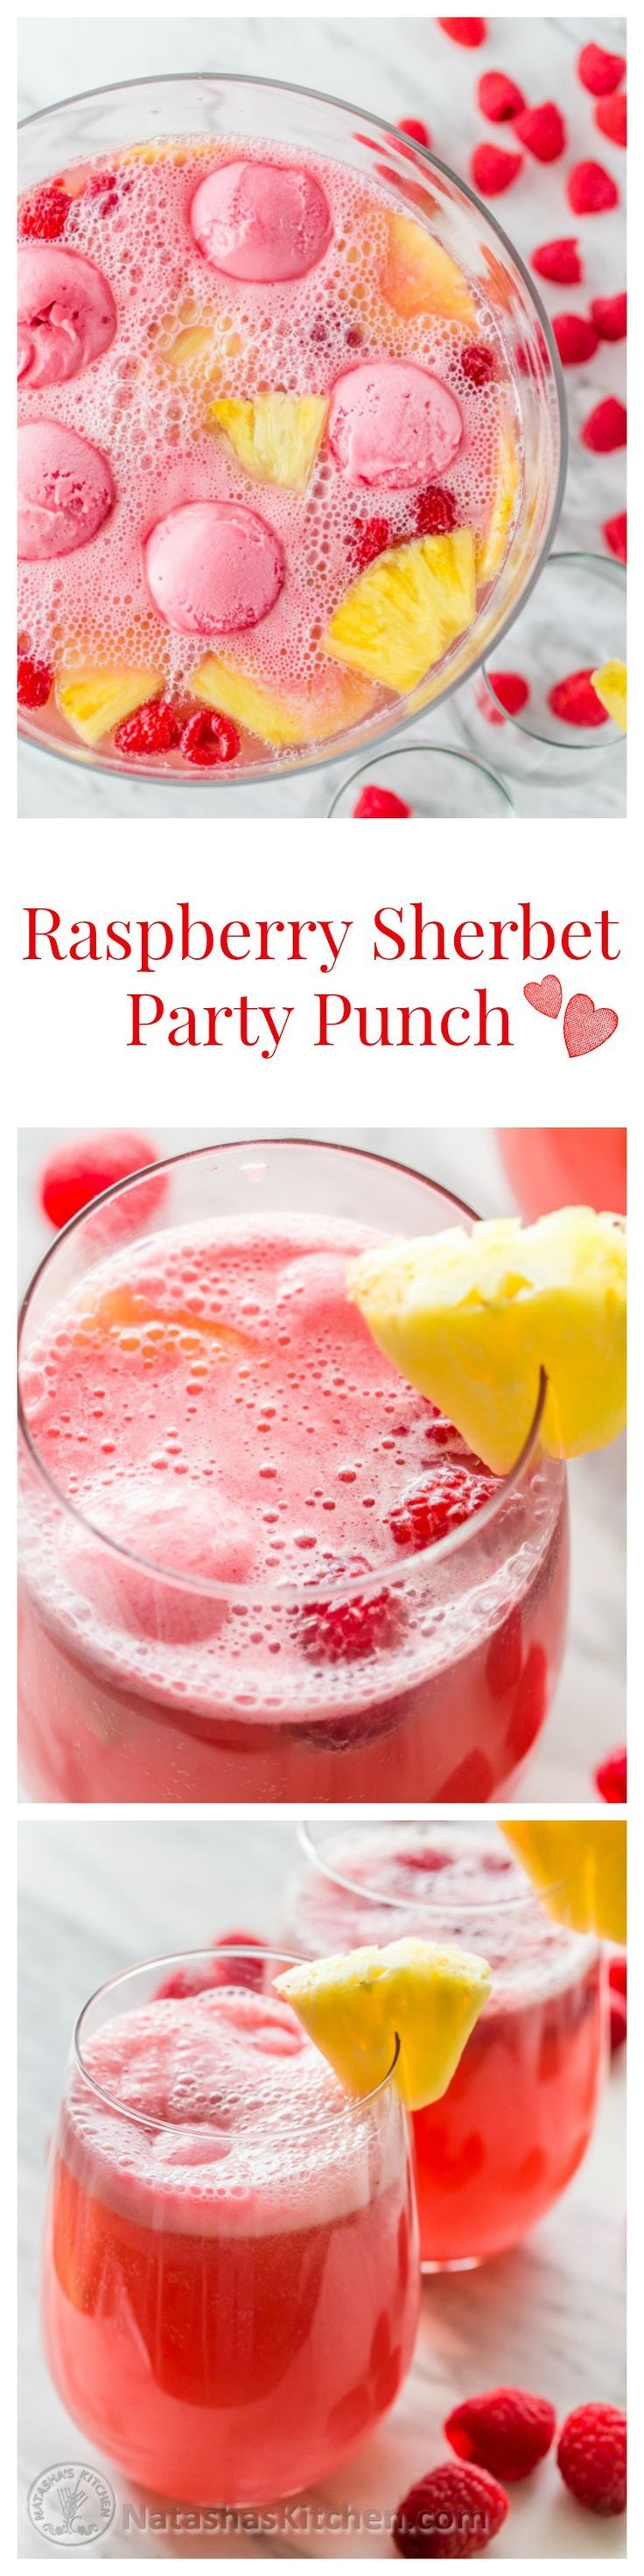 This Sherbet Party Punch is perfect for potlucks, baby showers & Valentines Day! @natashaskitchen